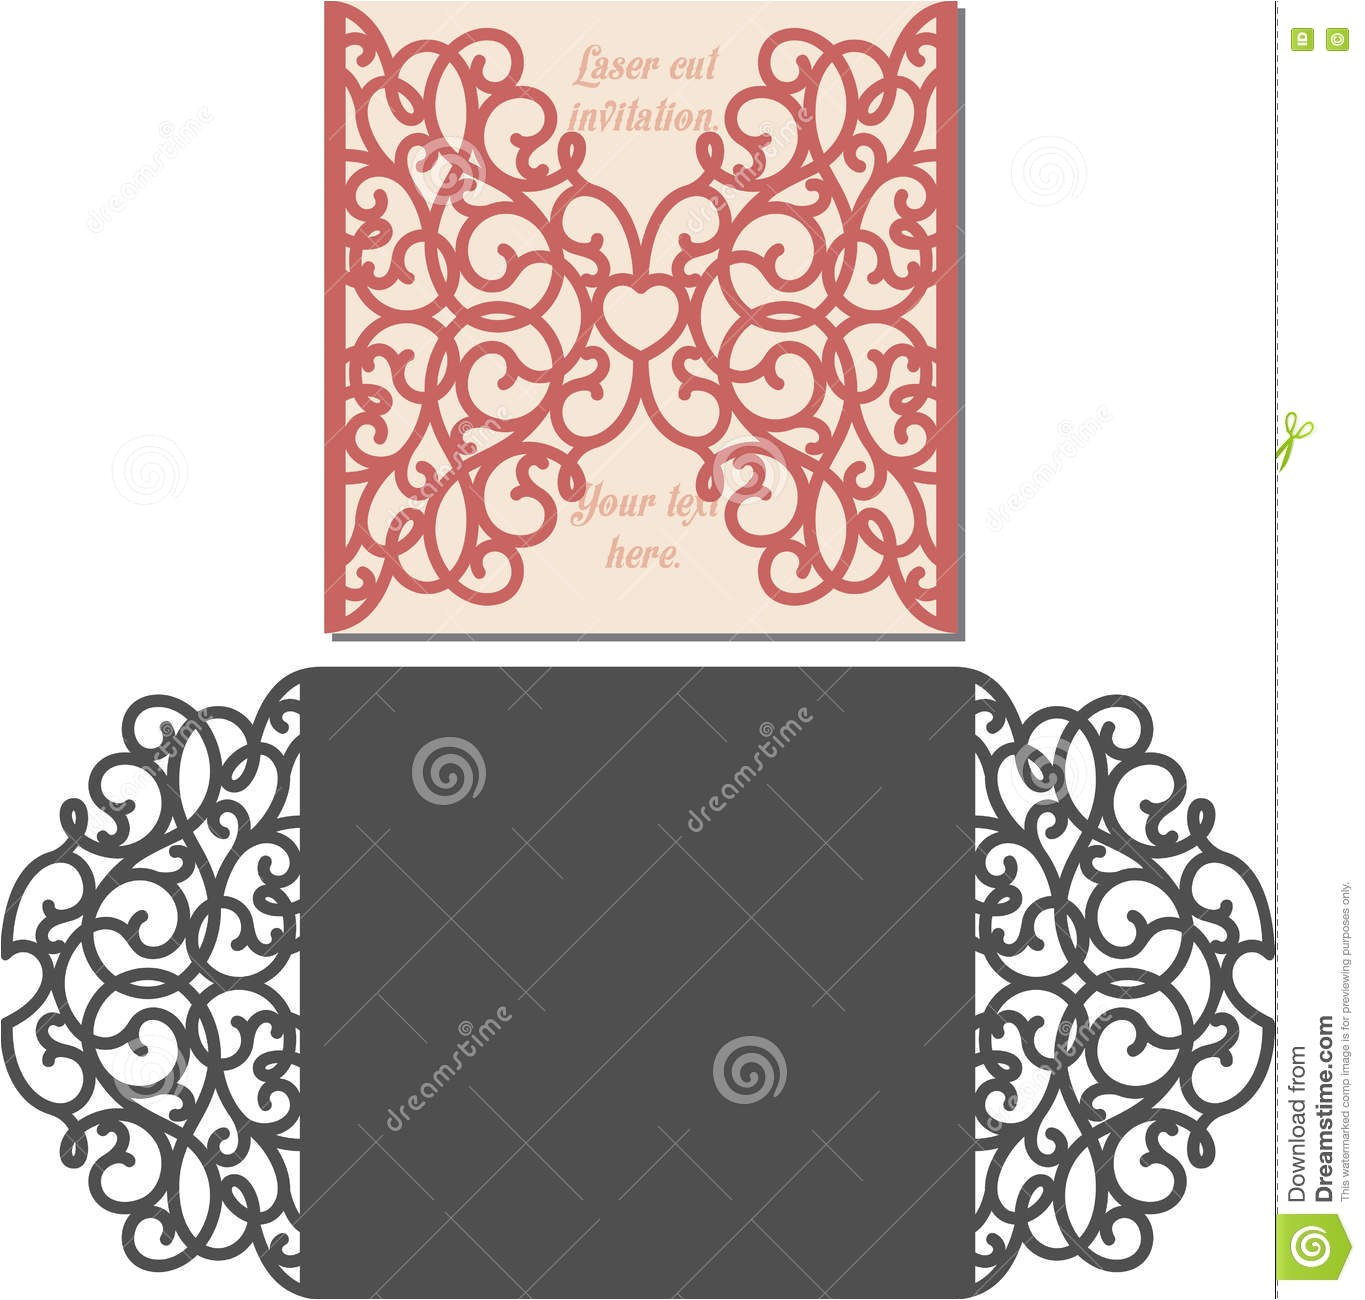 stock illustration laser cut envelope template invitation wedding card cutting pattern image72590060